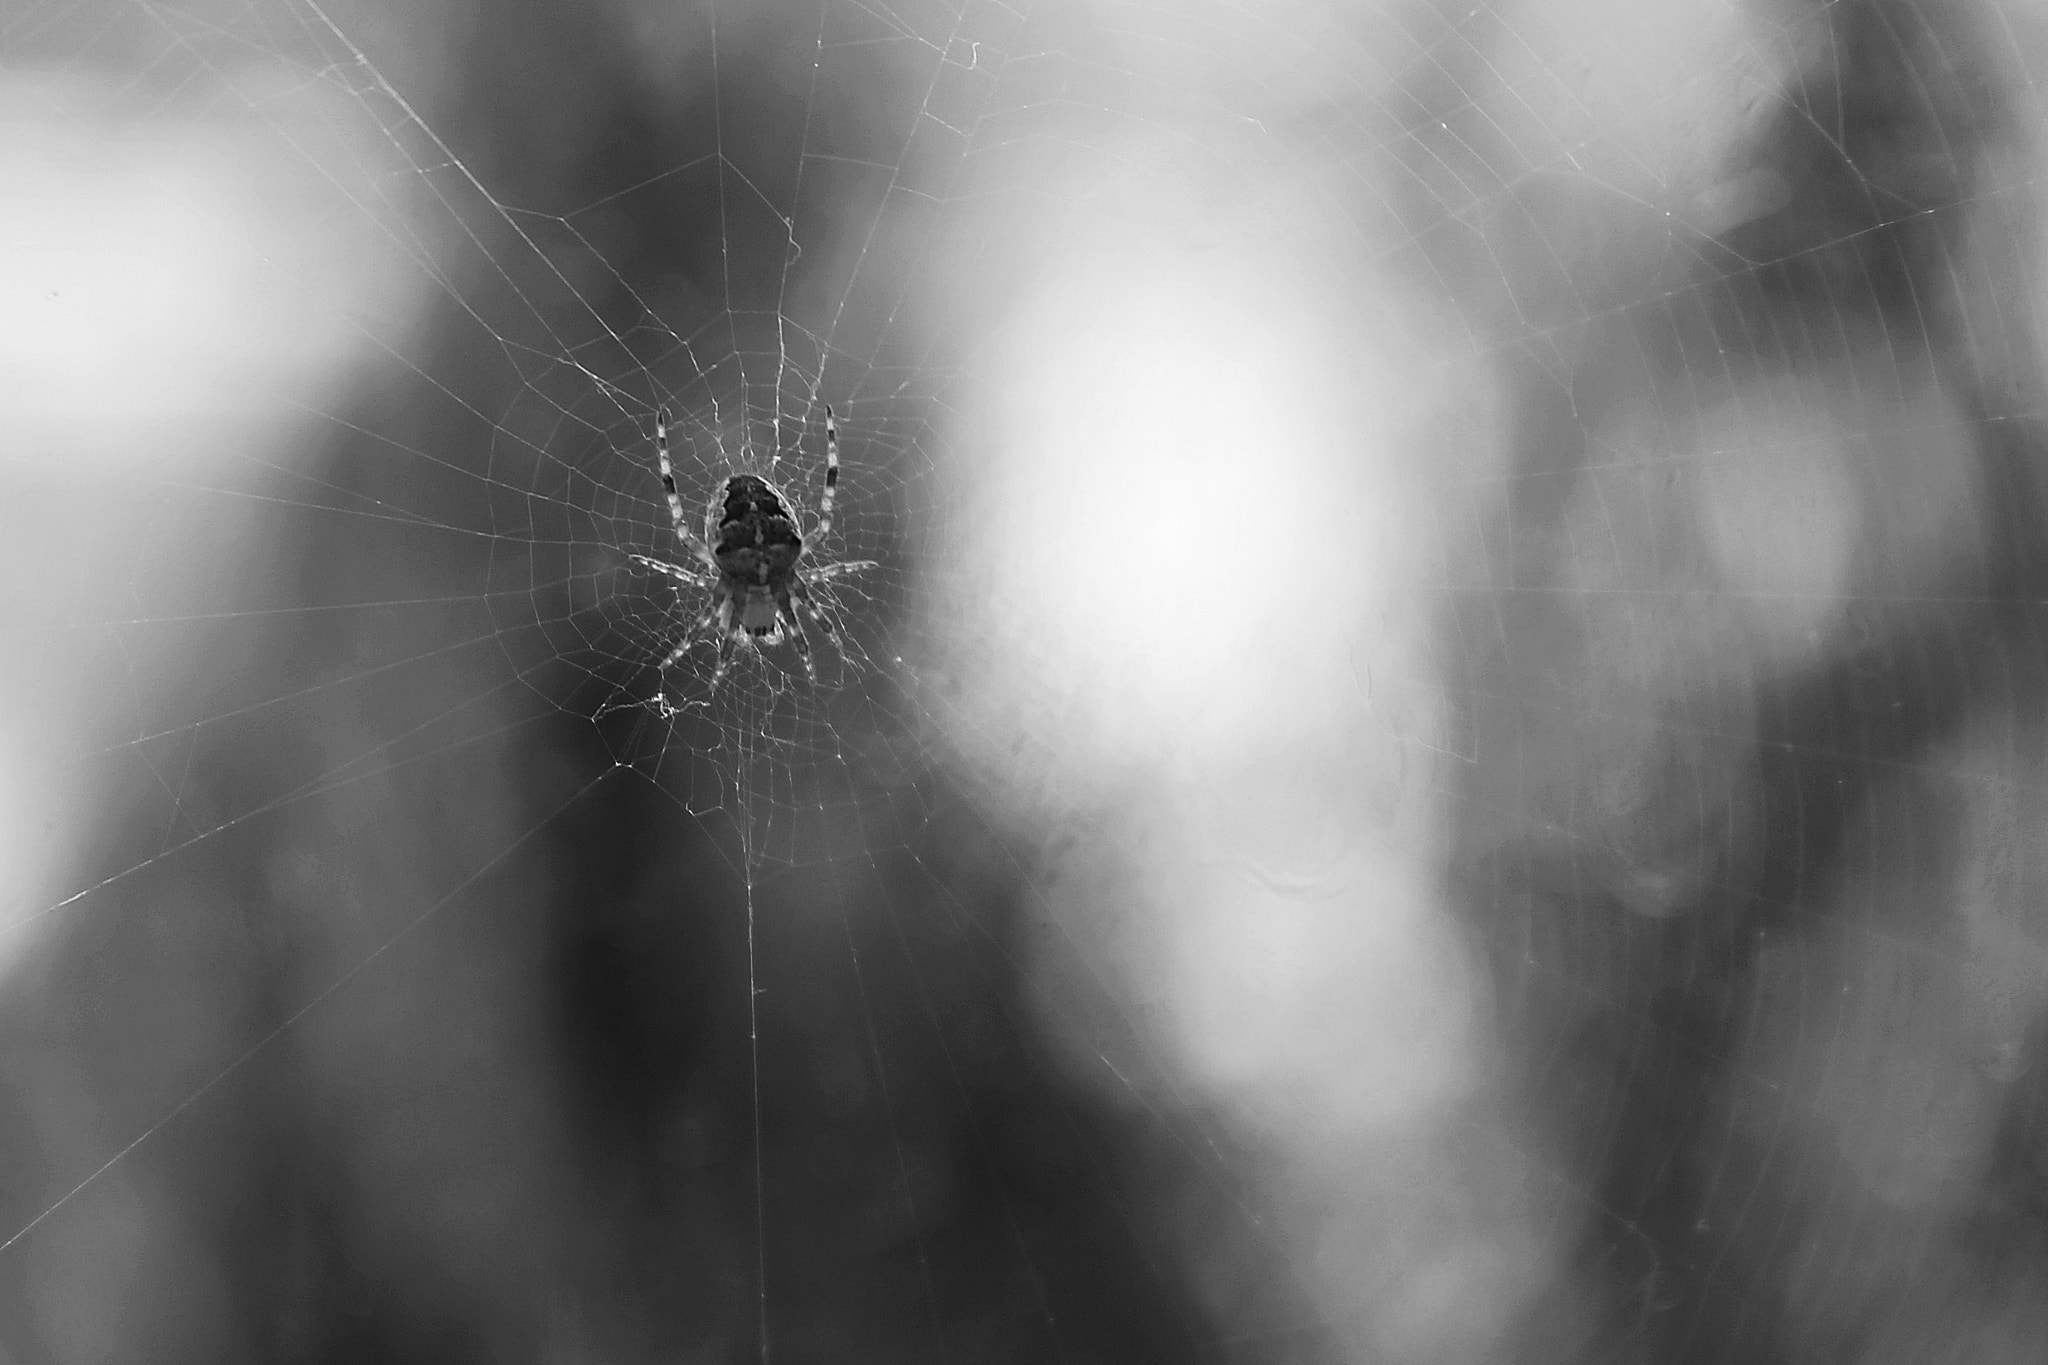 Photograph a little spider by Janine G. on 500px